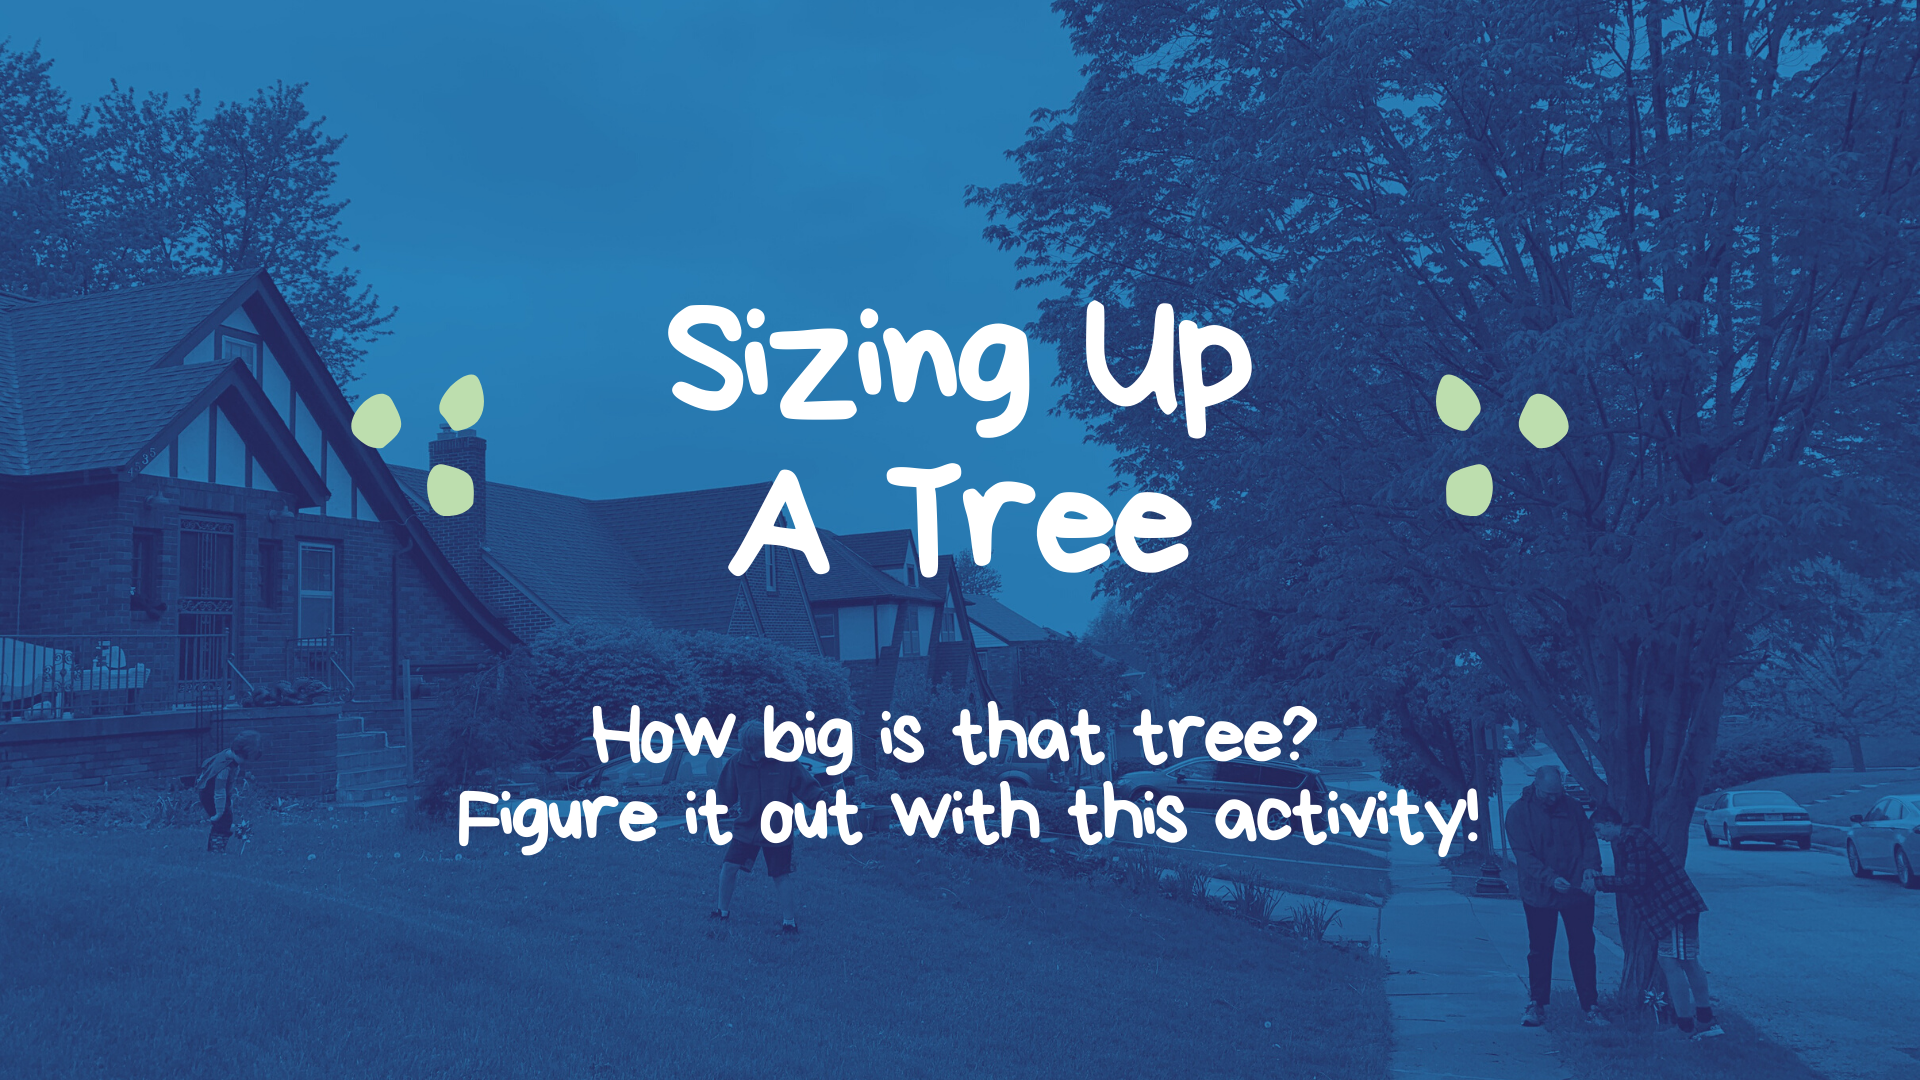 Sizing Up A Tree